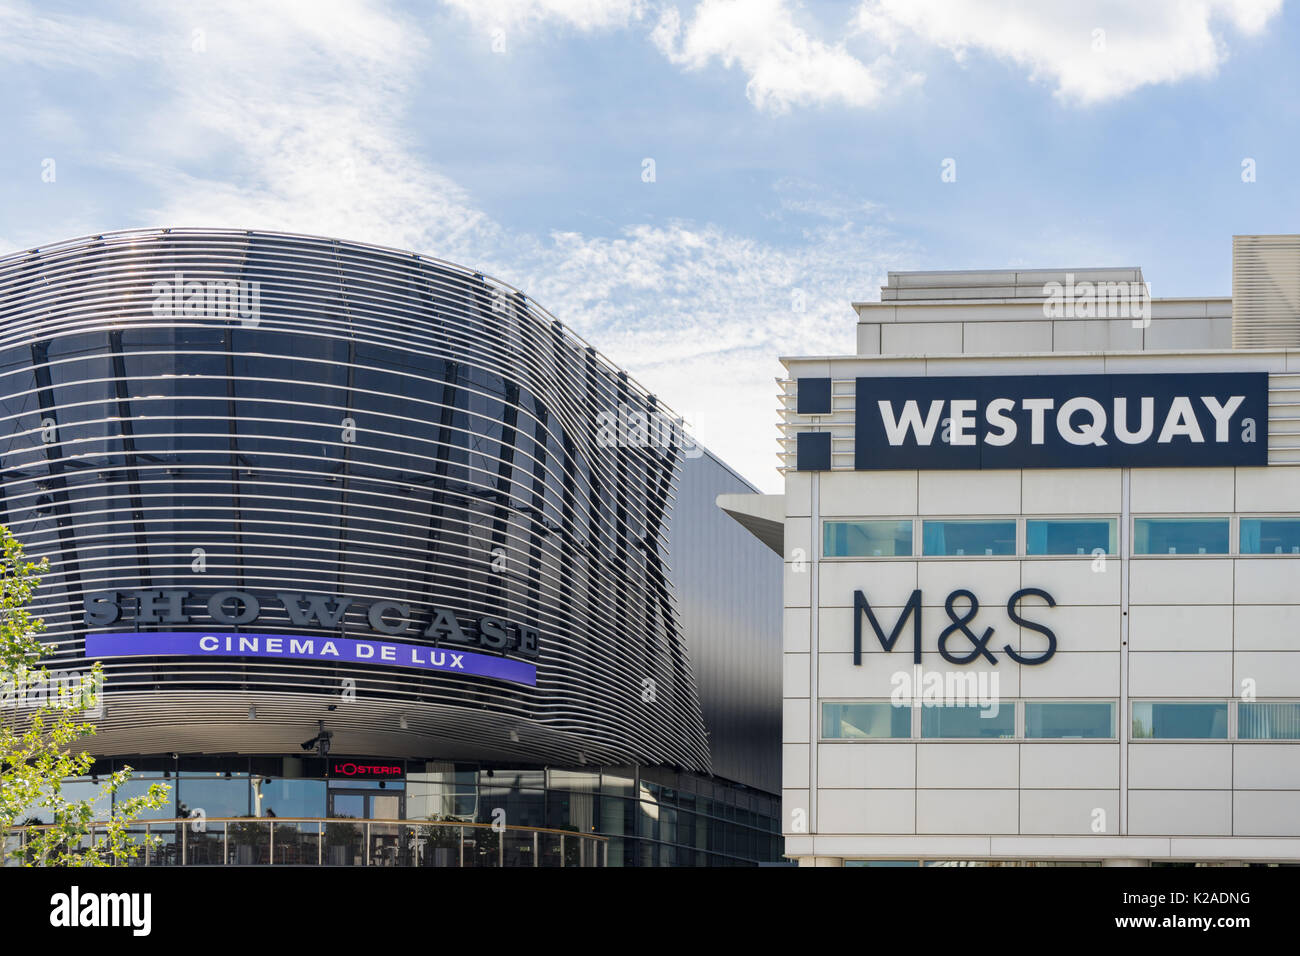 Contrasting architecture between the old and the new extension to WestQuay shopping, dining and leisure complex - Stock Image